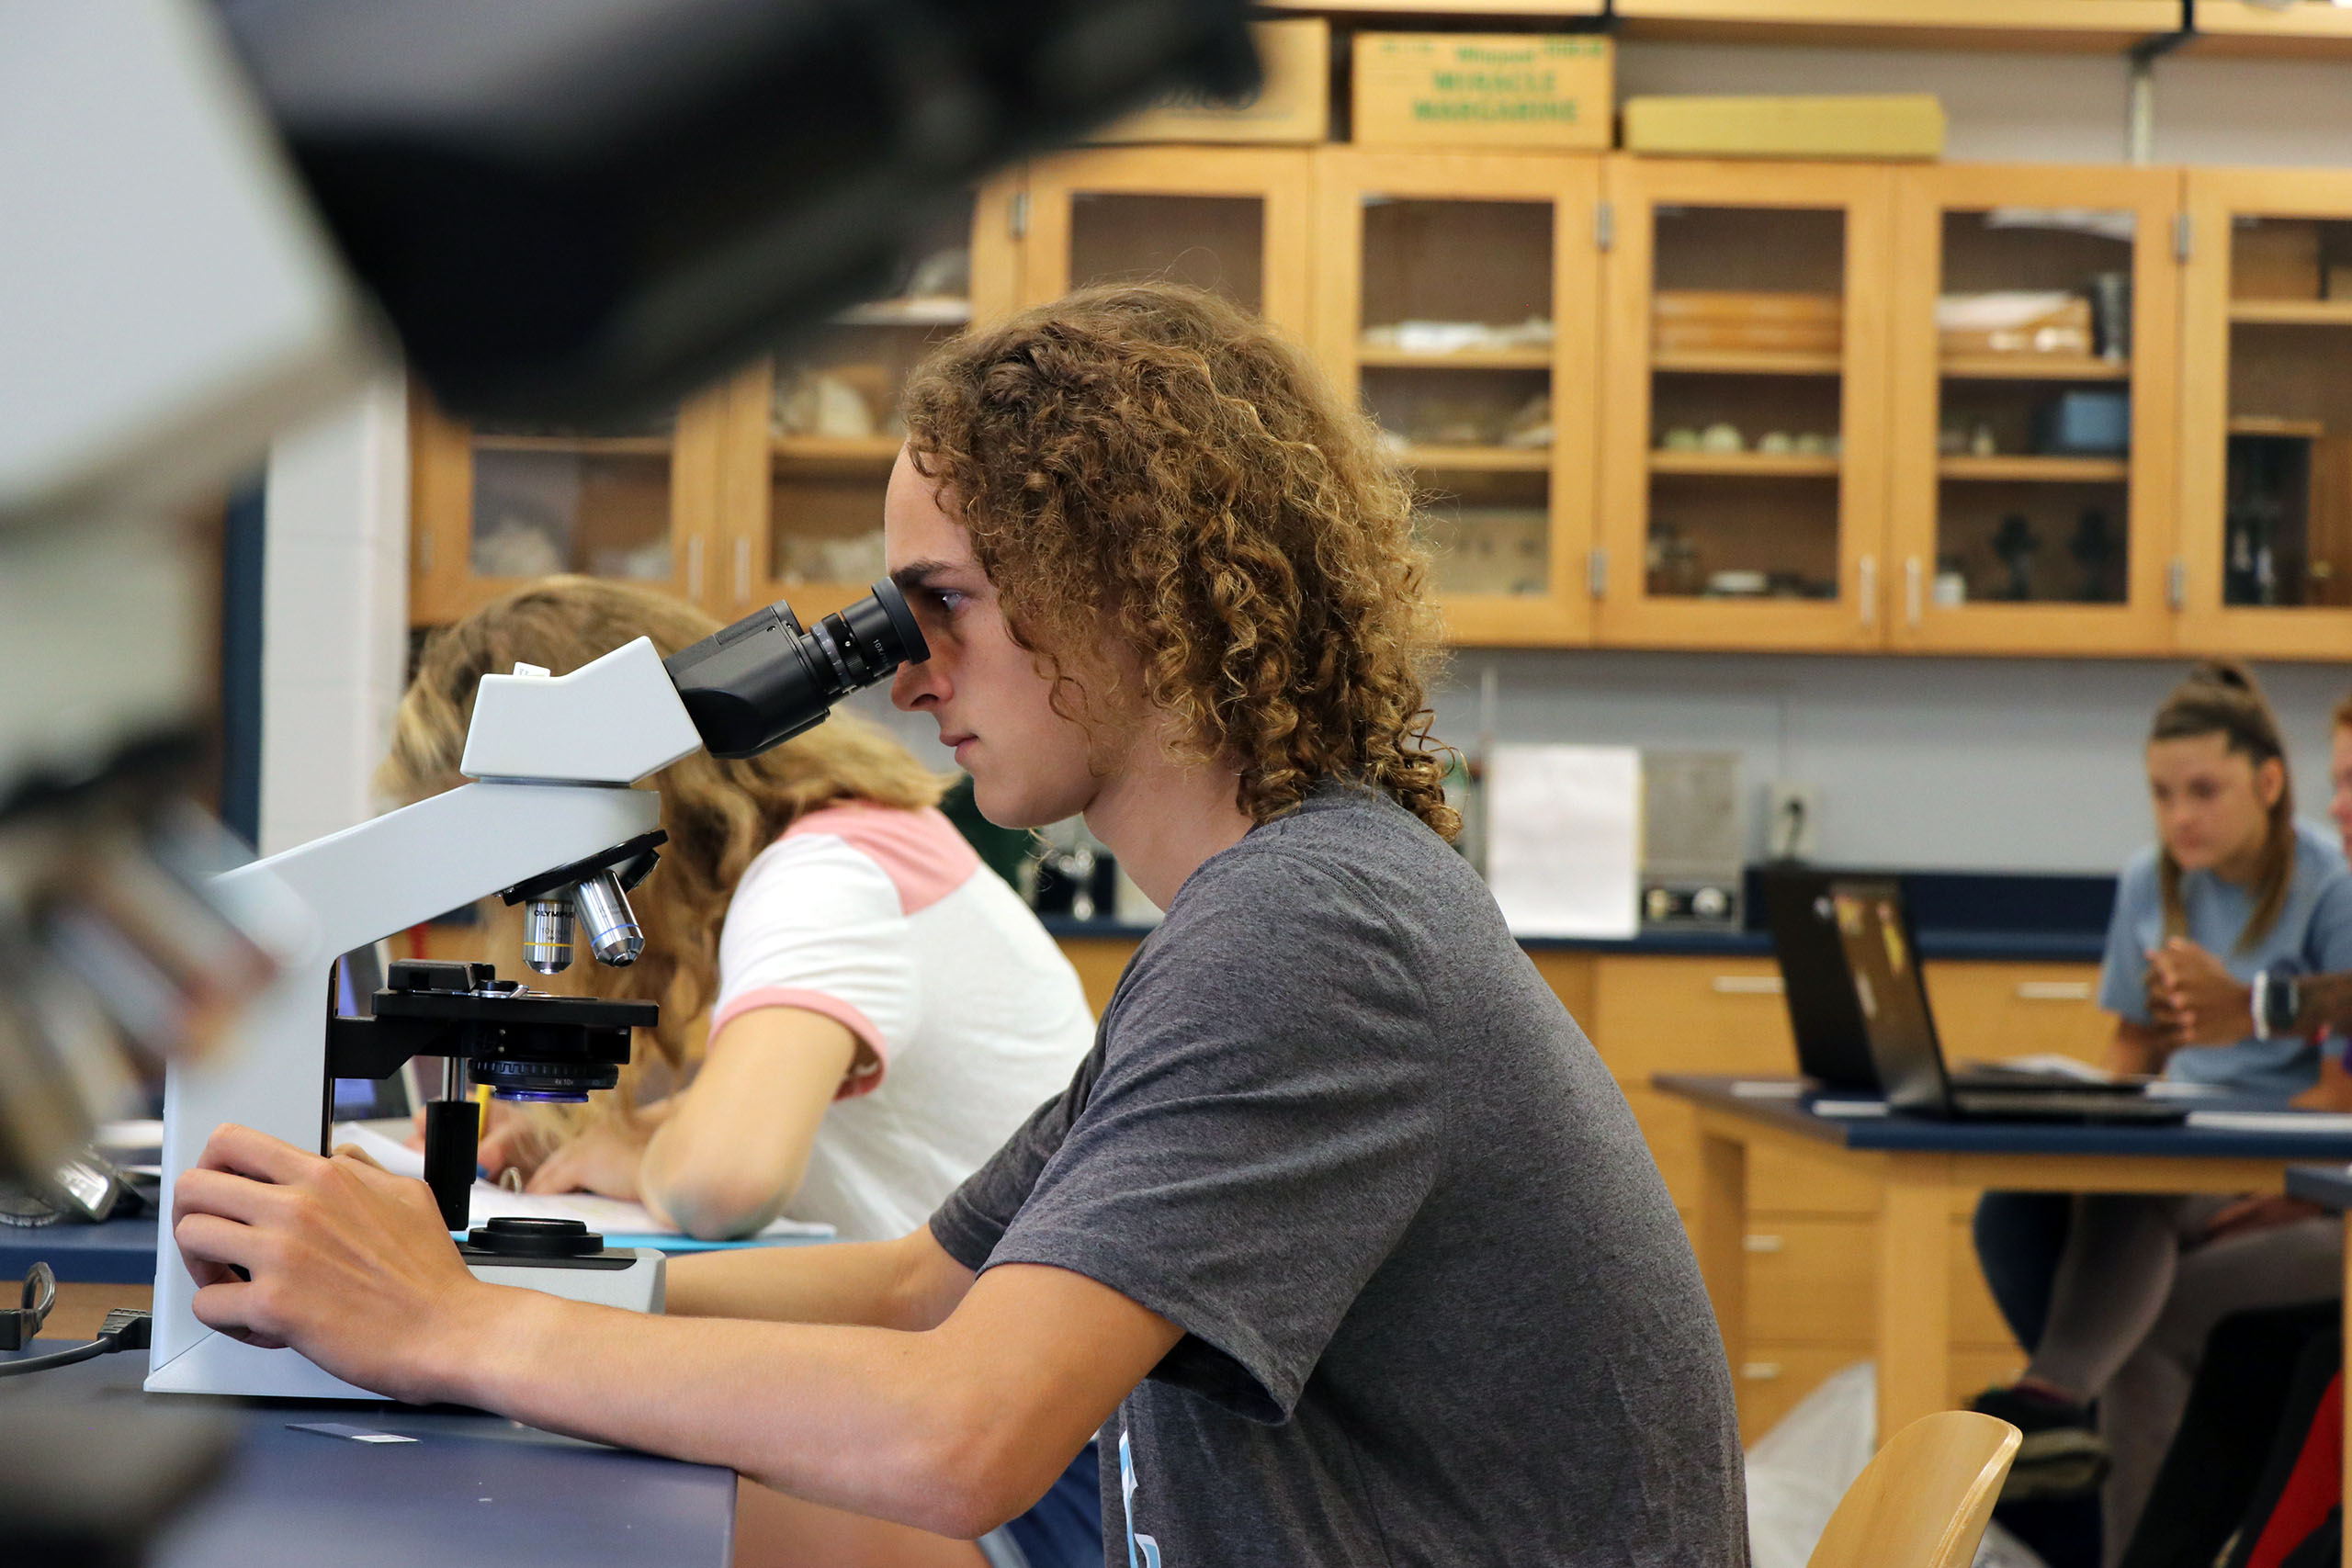 Student looking into a microscope during science class.